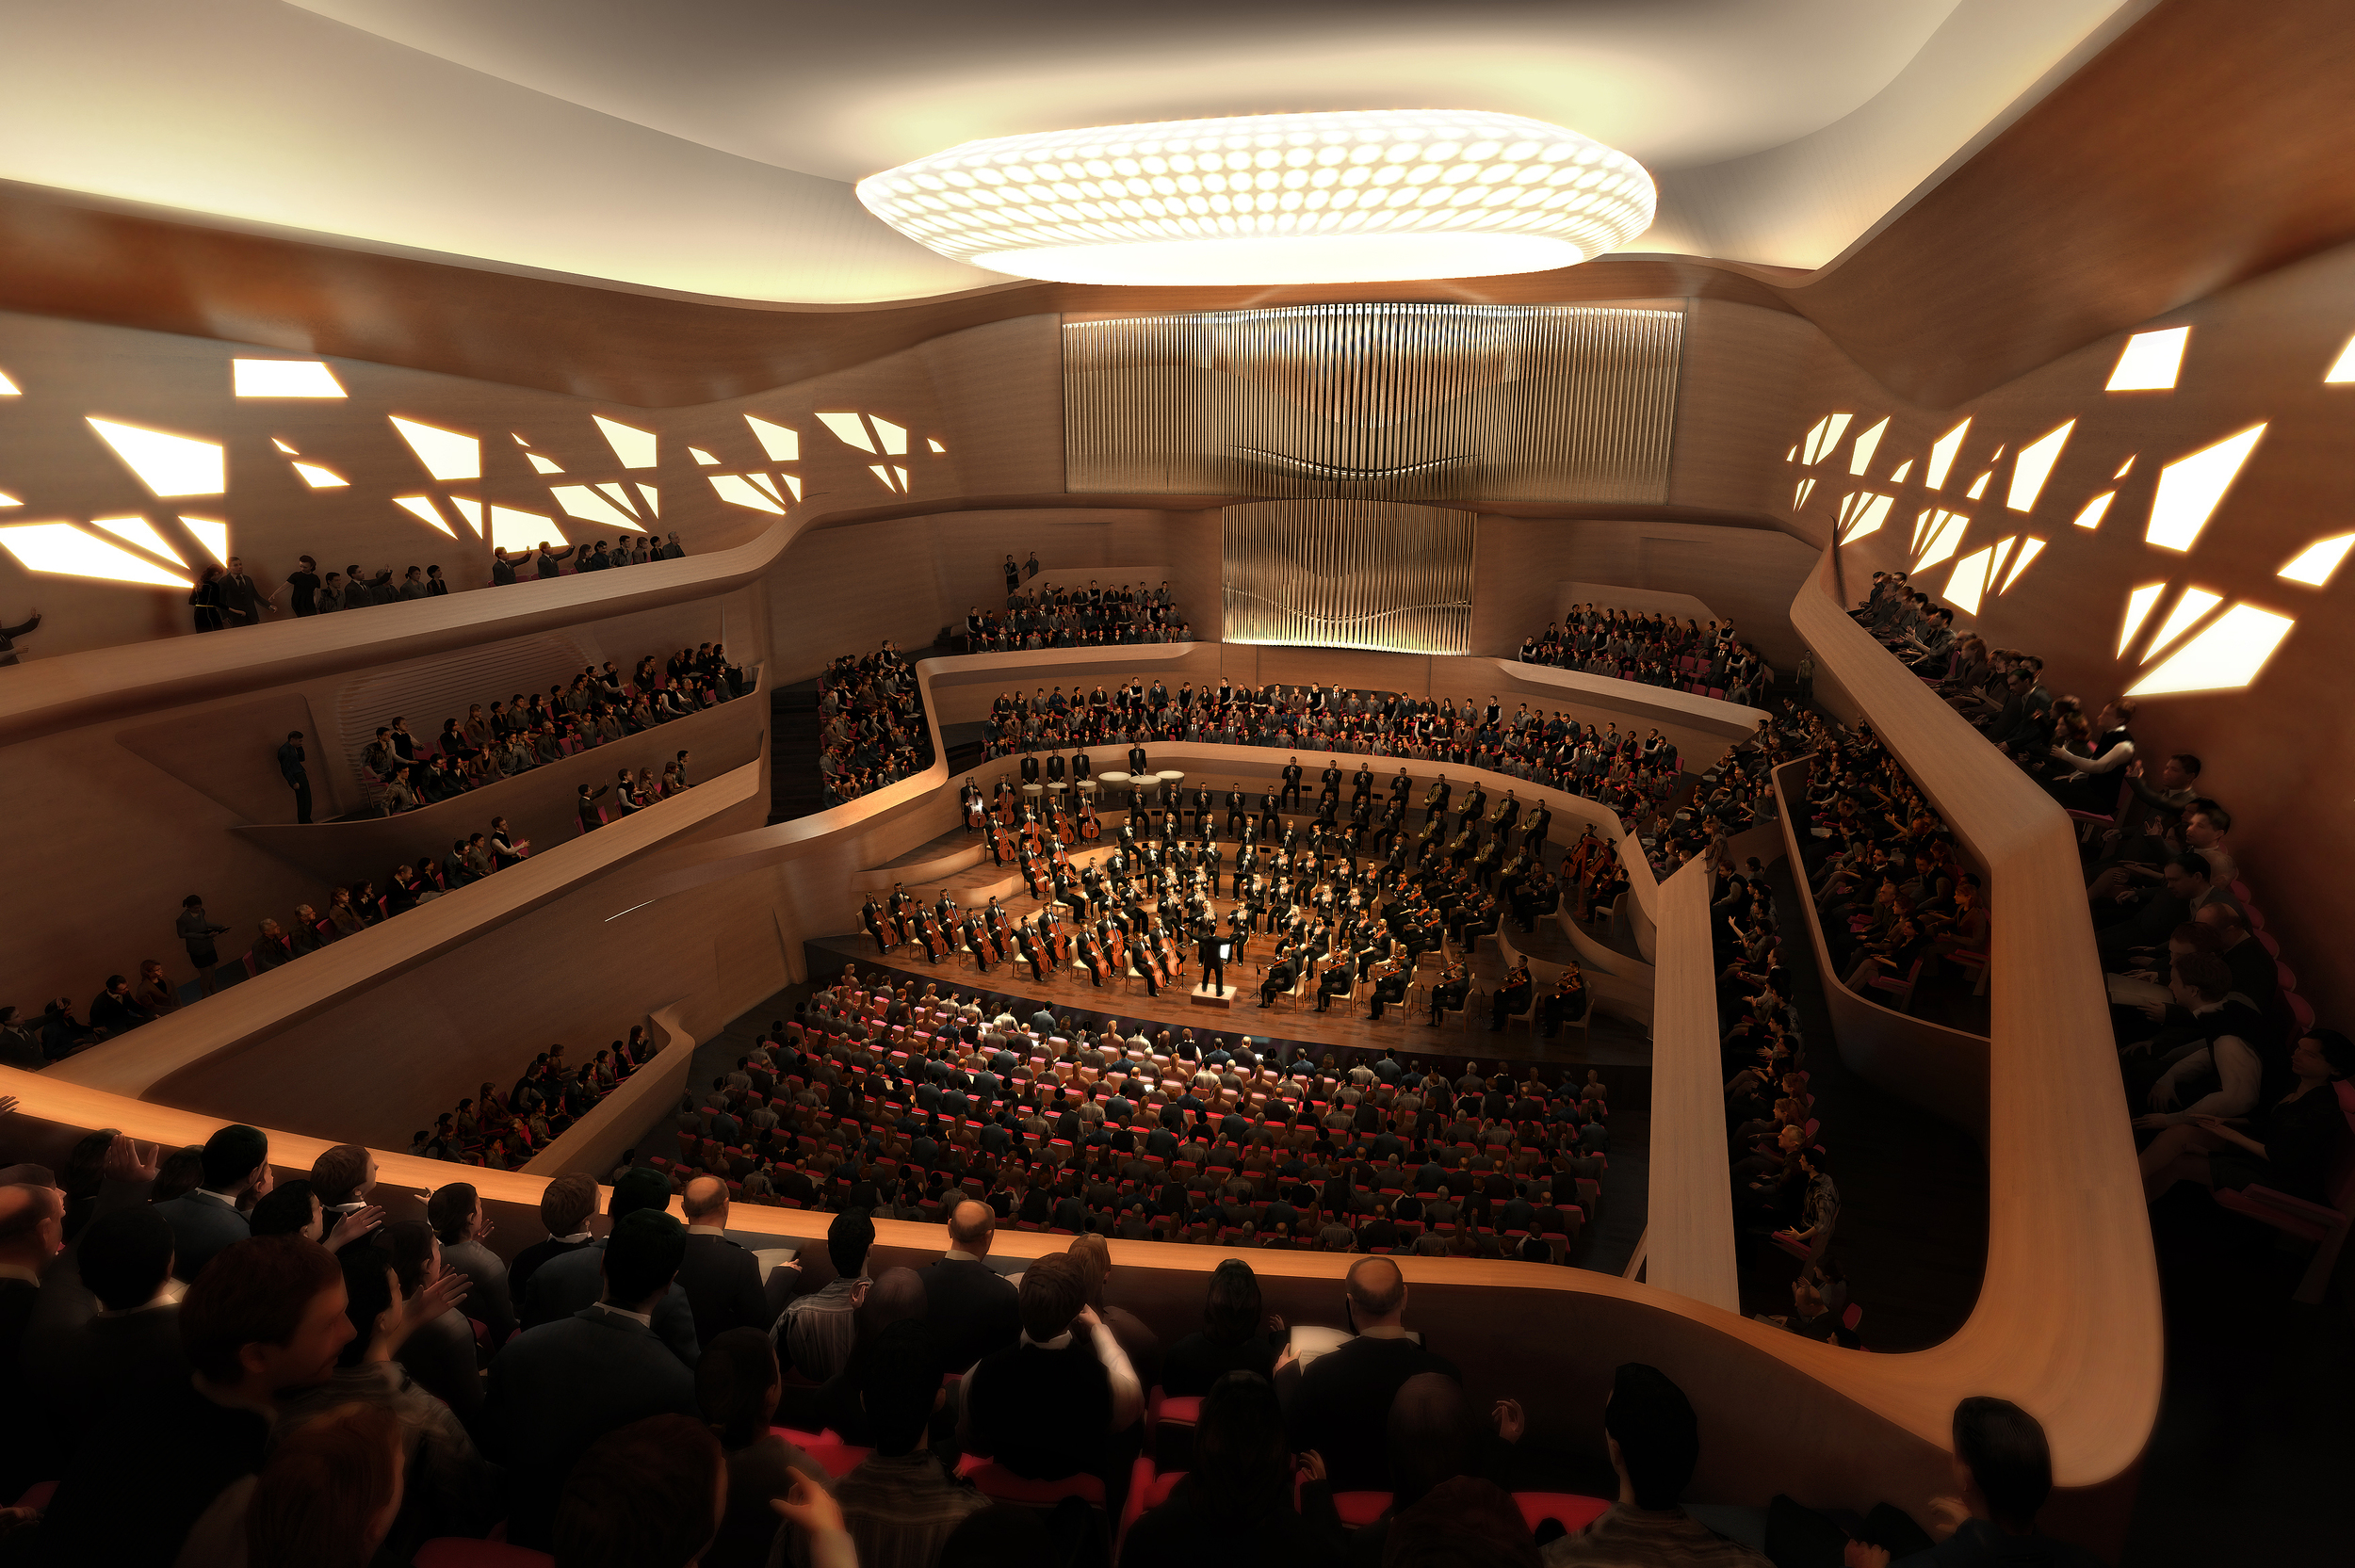 mth_zh_beethoven hall_ba_view05a_a02.jpg